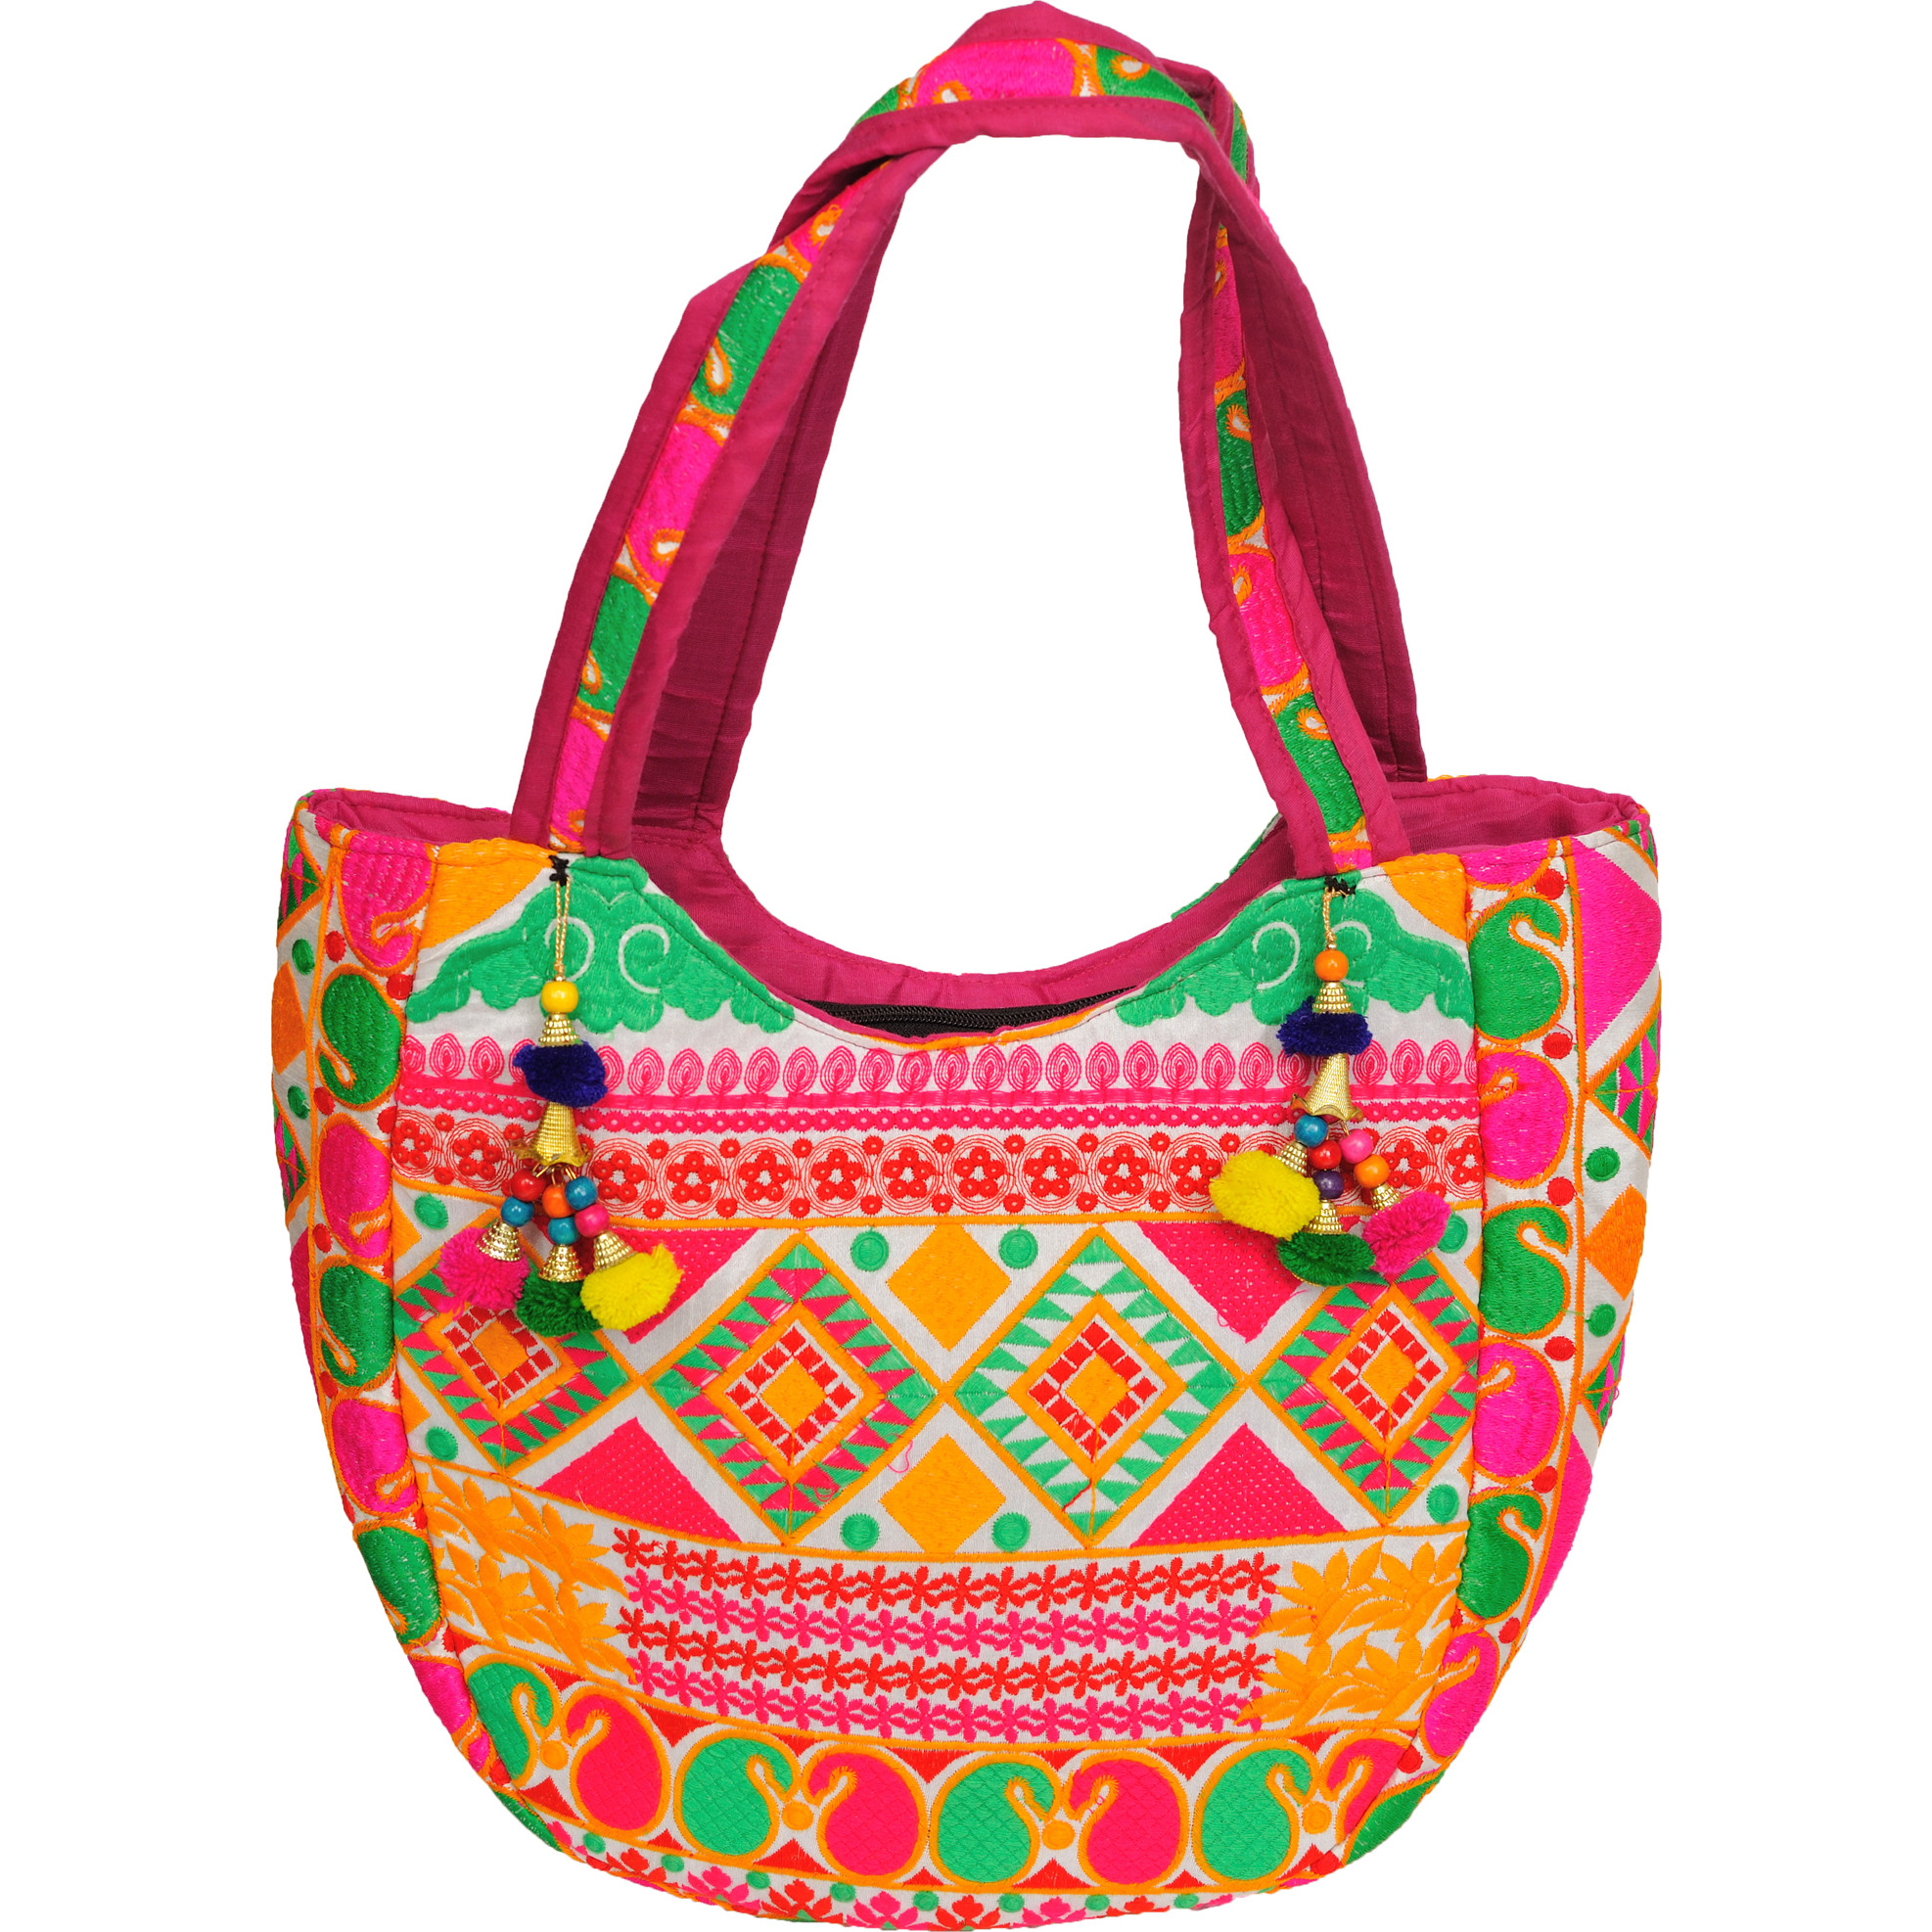 Multicolored Shopper Bag from Gujarat with Thread-Embroidery All-Over